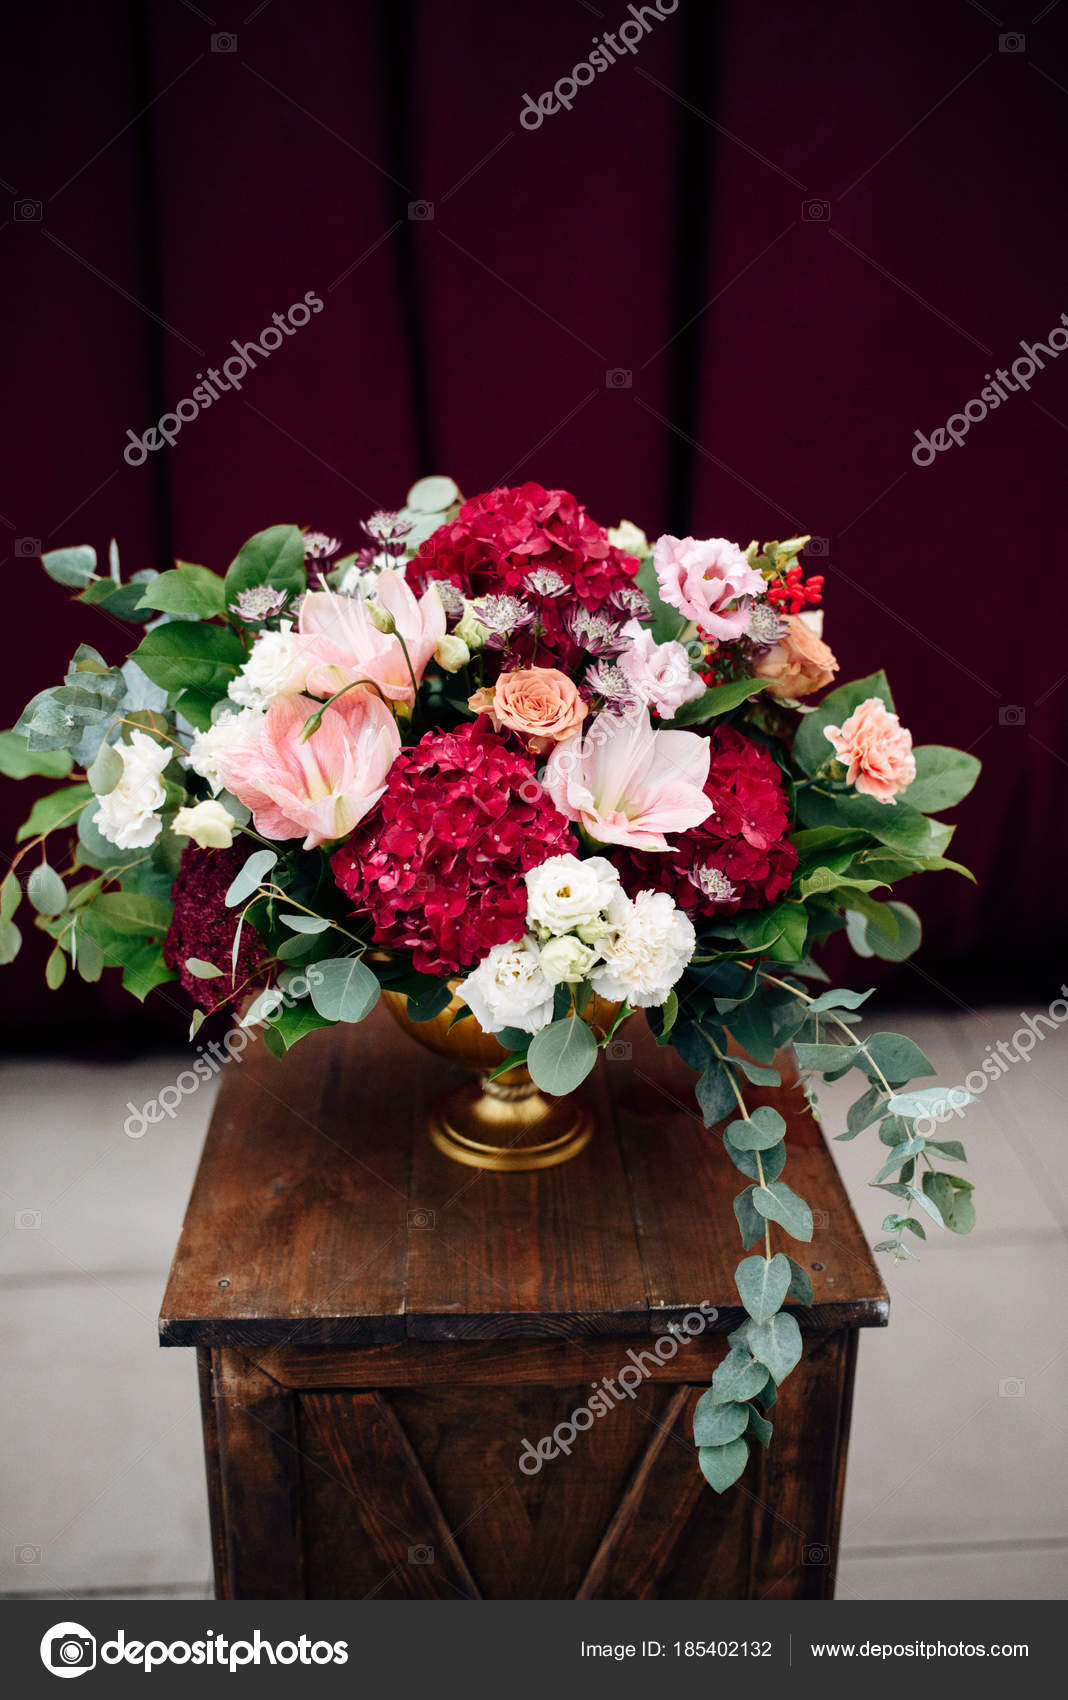 Luxurious bouquet with white and purple flowers in a vase on a luxurious bouquet with white and purple flowers in a vase on a wooden stand stock izmirmasajfo